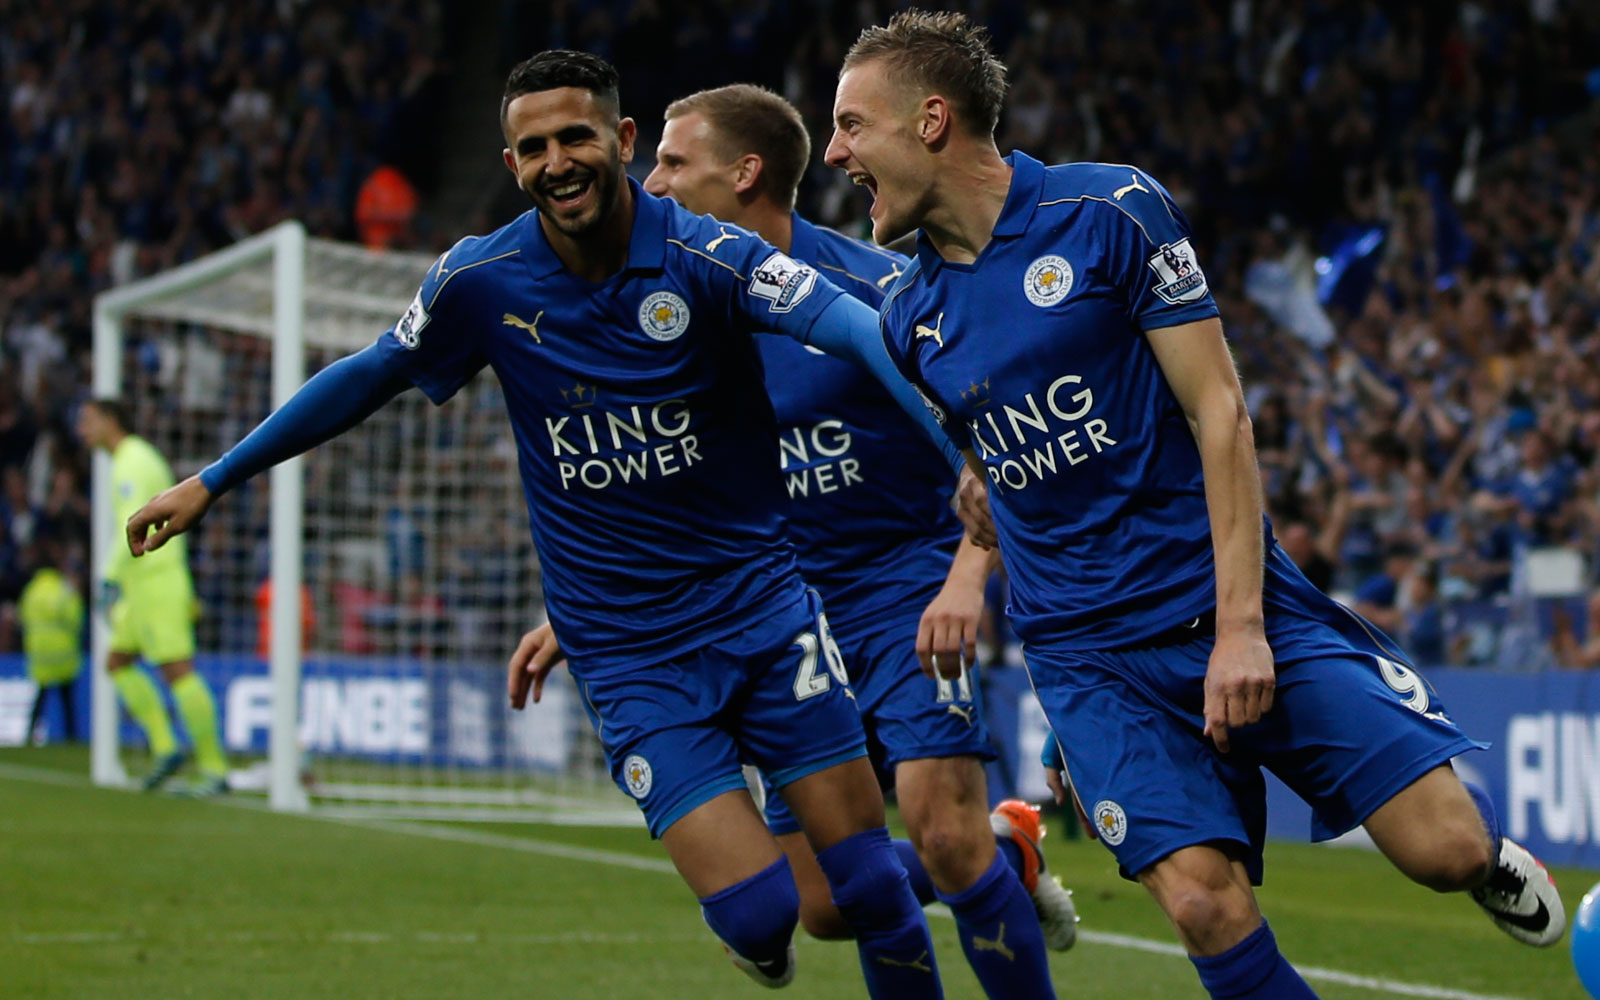 Jamie Vardy wastes no time in marking his return to Leicester's lineup after a two-game ban, scoring five minutes in to keep the celebration going on the field.